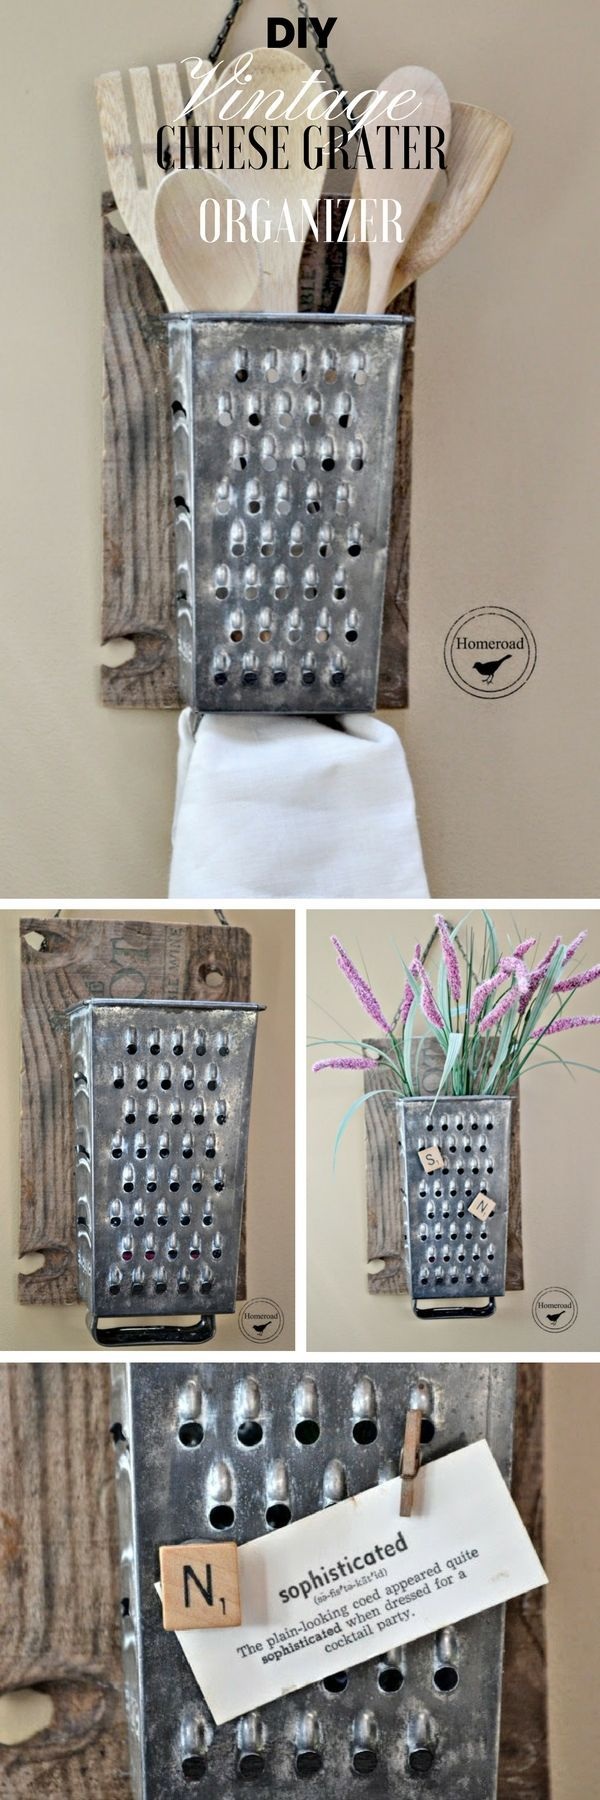 Diy Kitchen Decorating 25 Best Ideas About Diy Kitchen Decor On Pinterest Hidden Trash